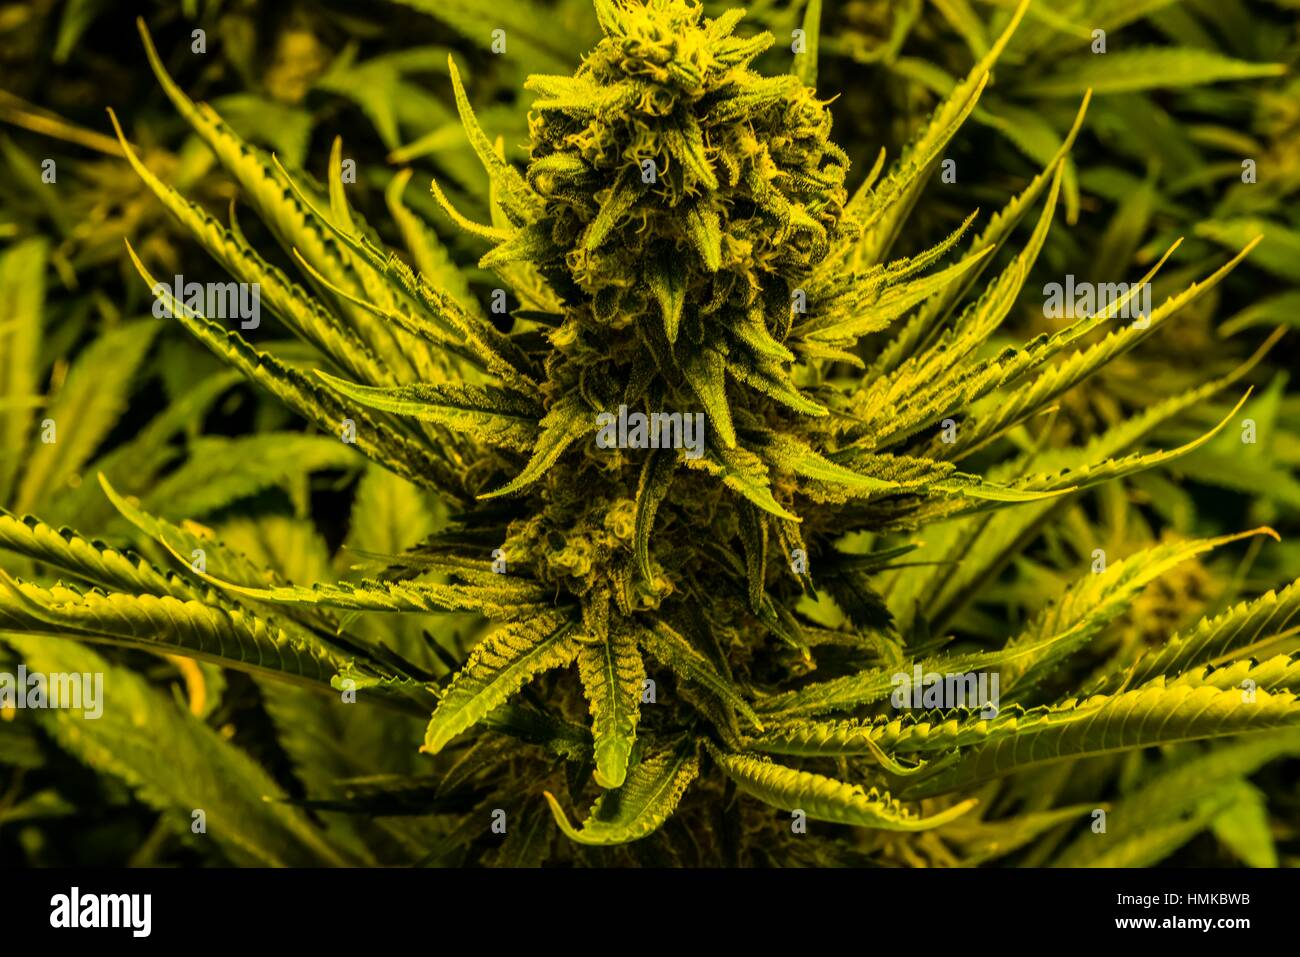 Island sweet skunk strain (sativa), Marijuana flowering Grow room, Sticky Buds, Denver, Colorado USA. - Stock Image